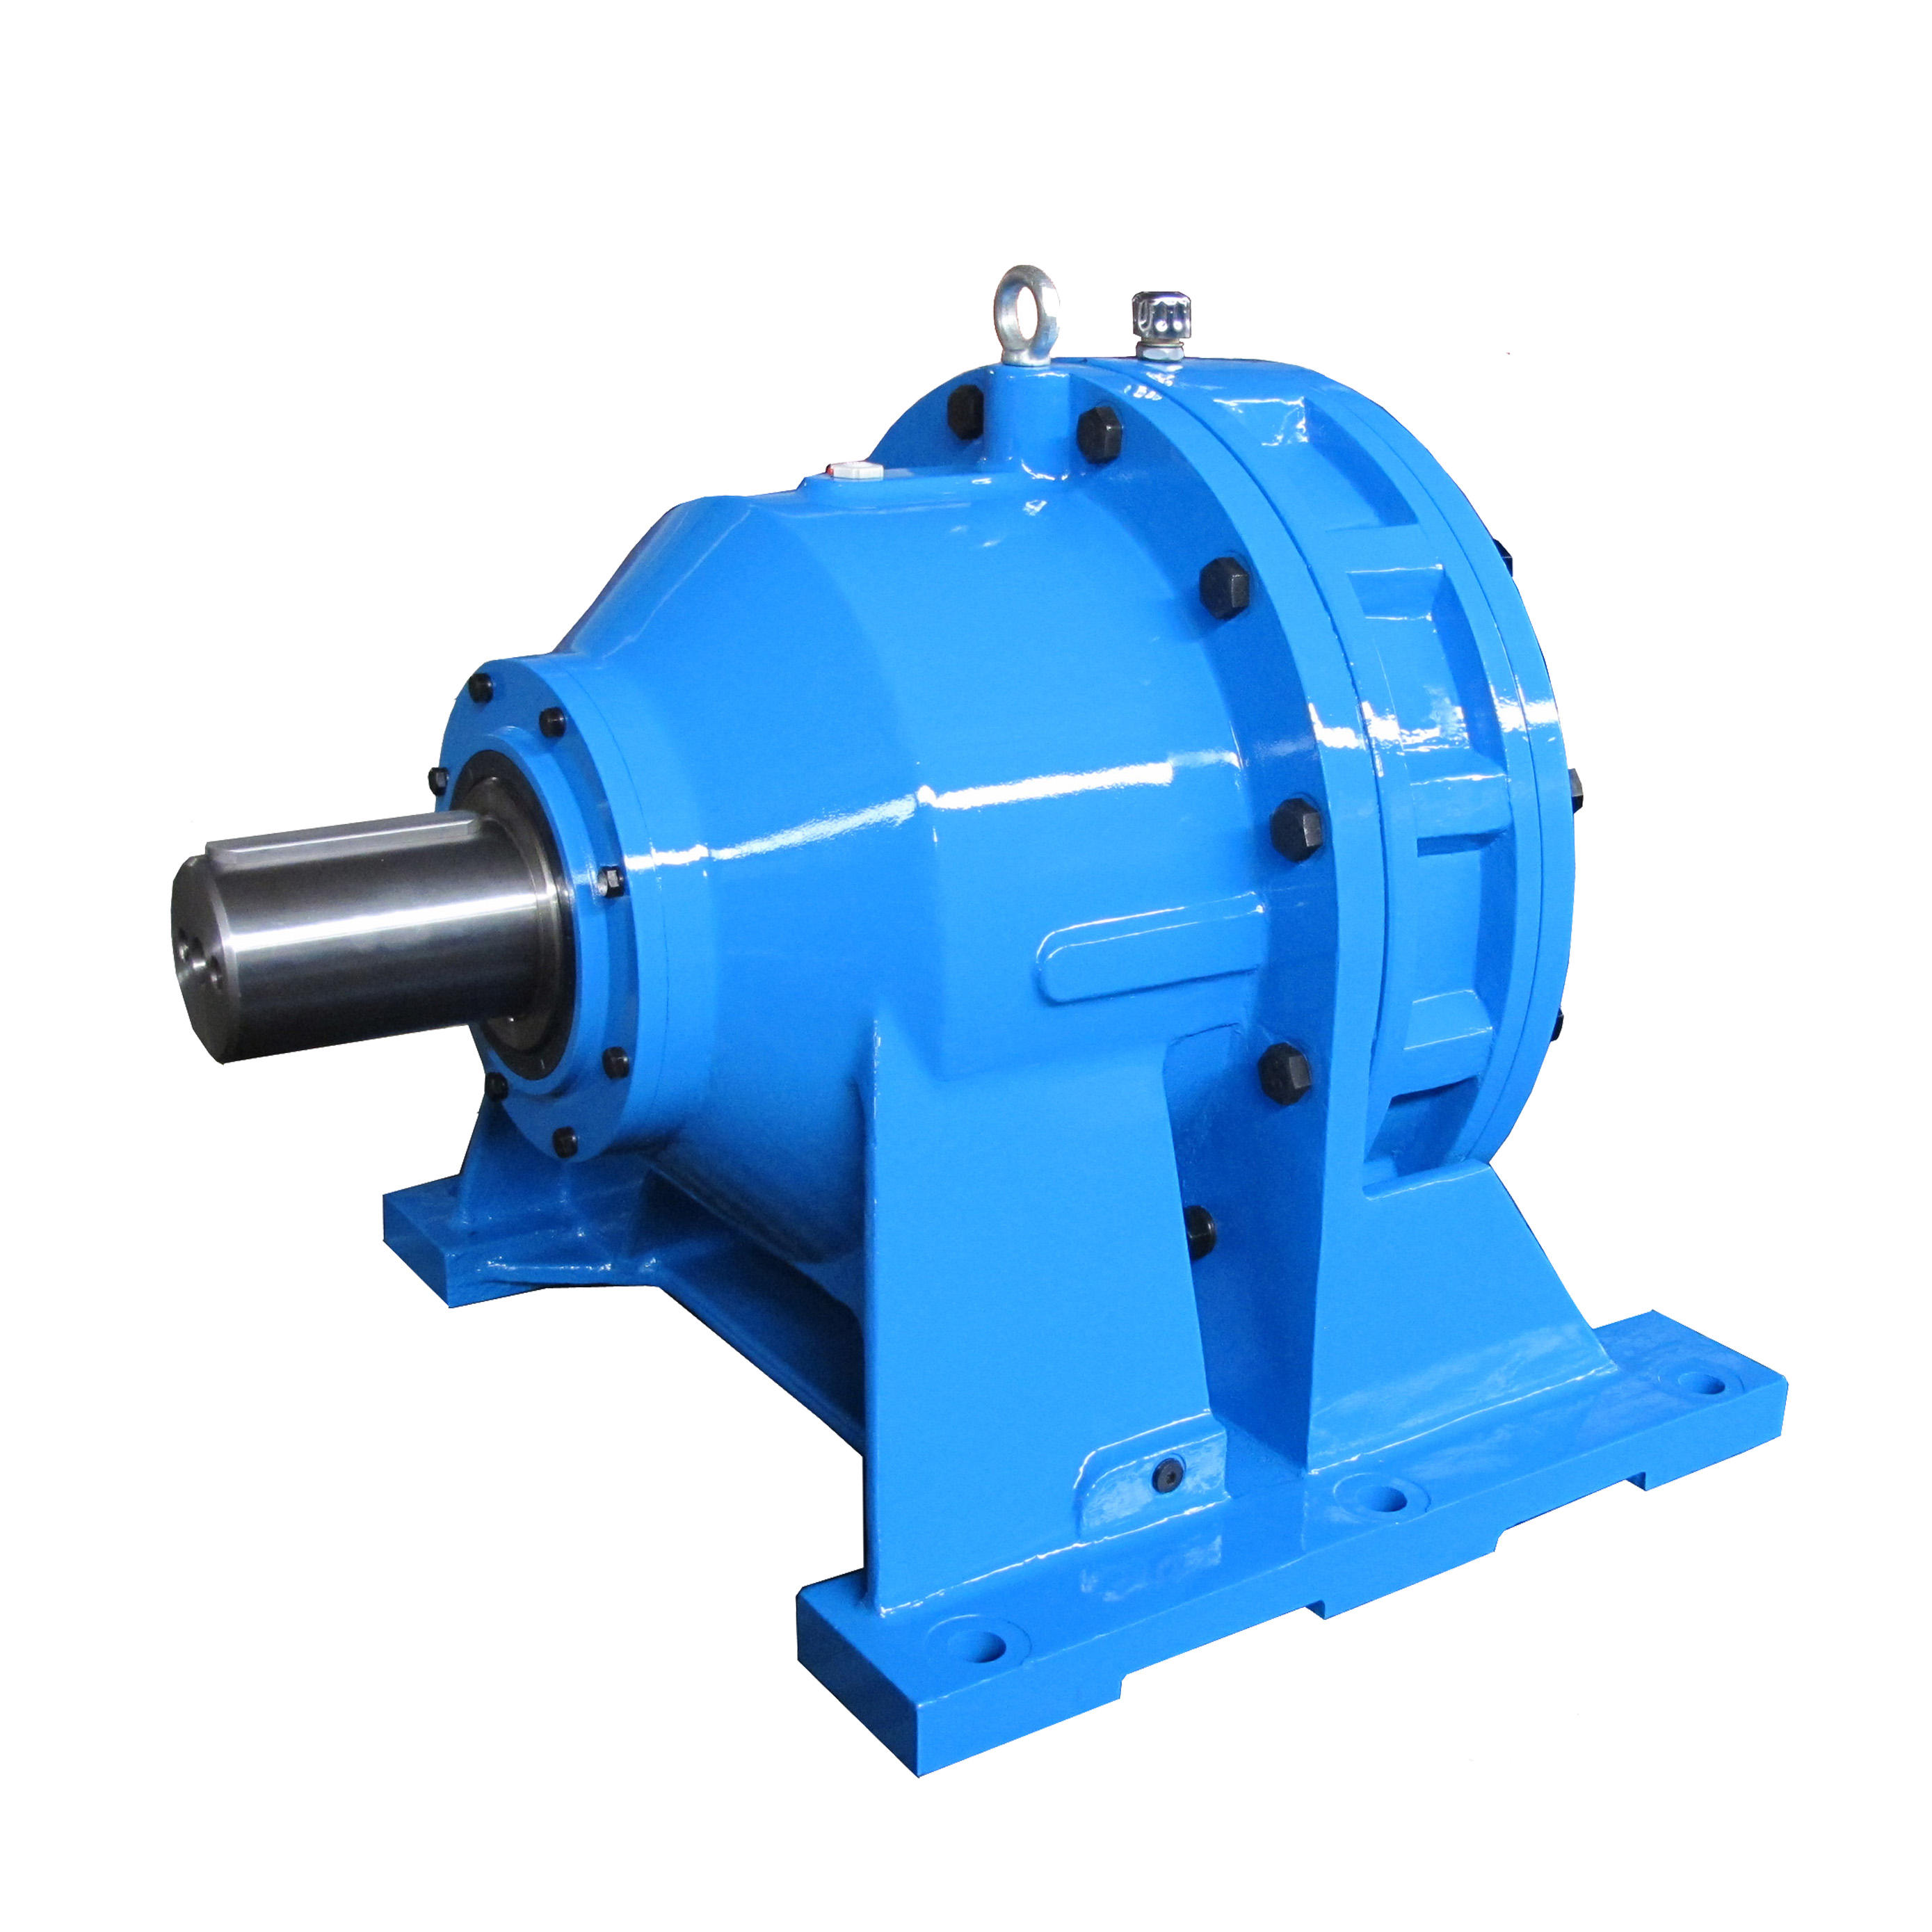 cycloidal speed reducer XW9 manual transmission 2 1 reduction gearbox torque arm speed reducer cycloidal pinwheel gearbox